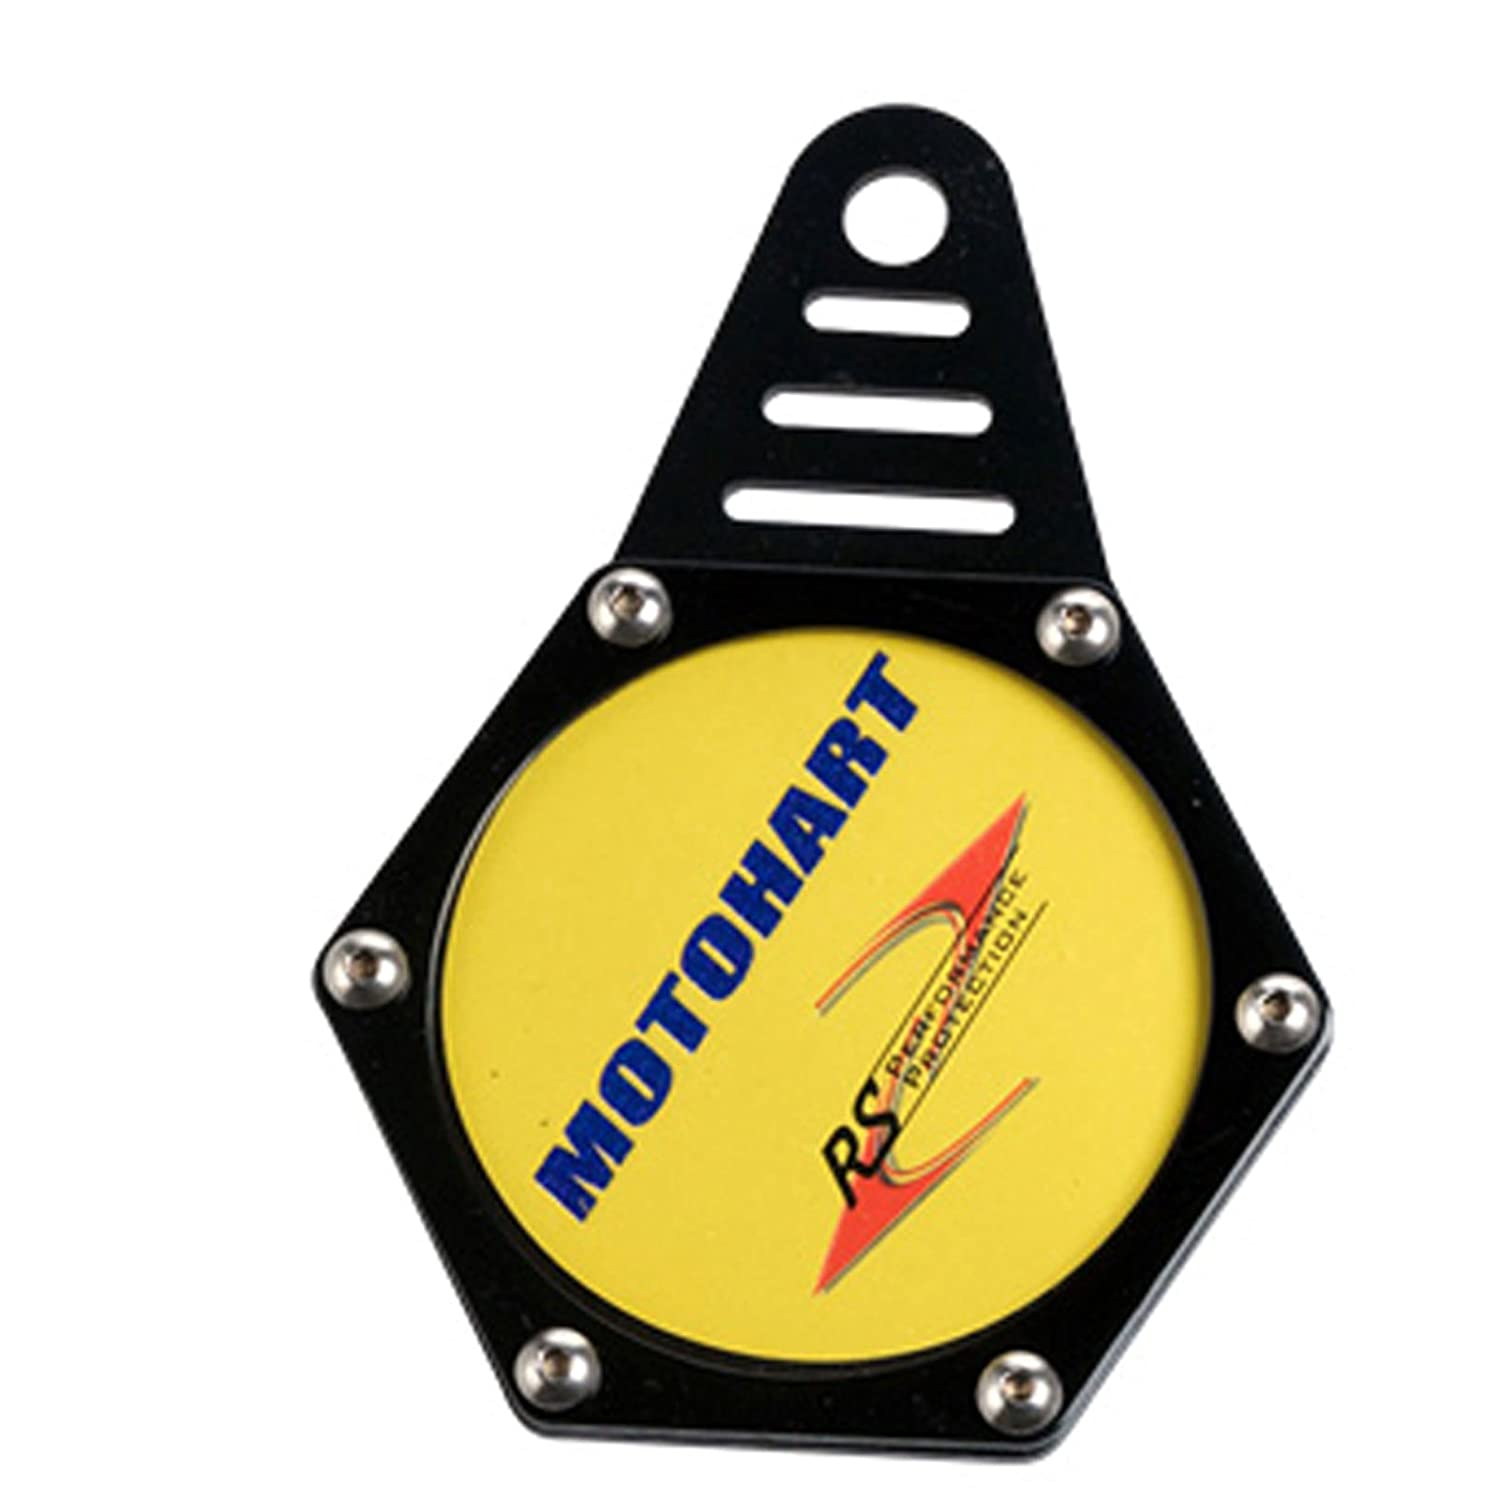 Viper Moto Accessories A220  Motorcycle Accessories Tax Disc Holder Tax Hexagon Black One Size Motohart UK Ltd